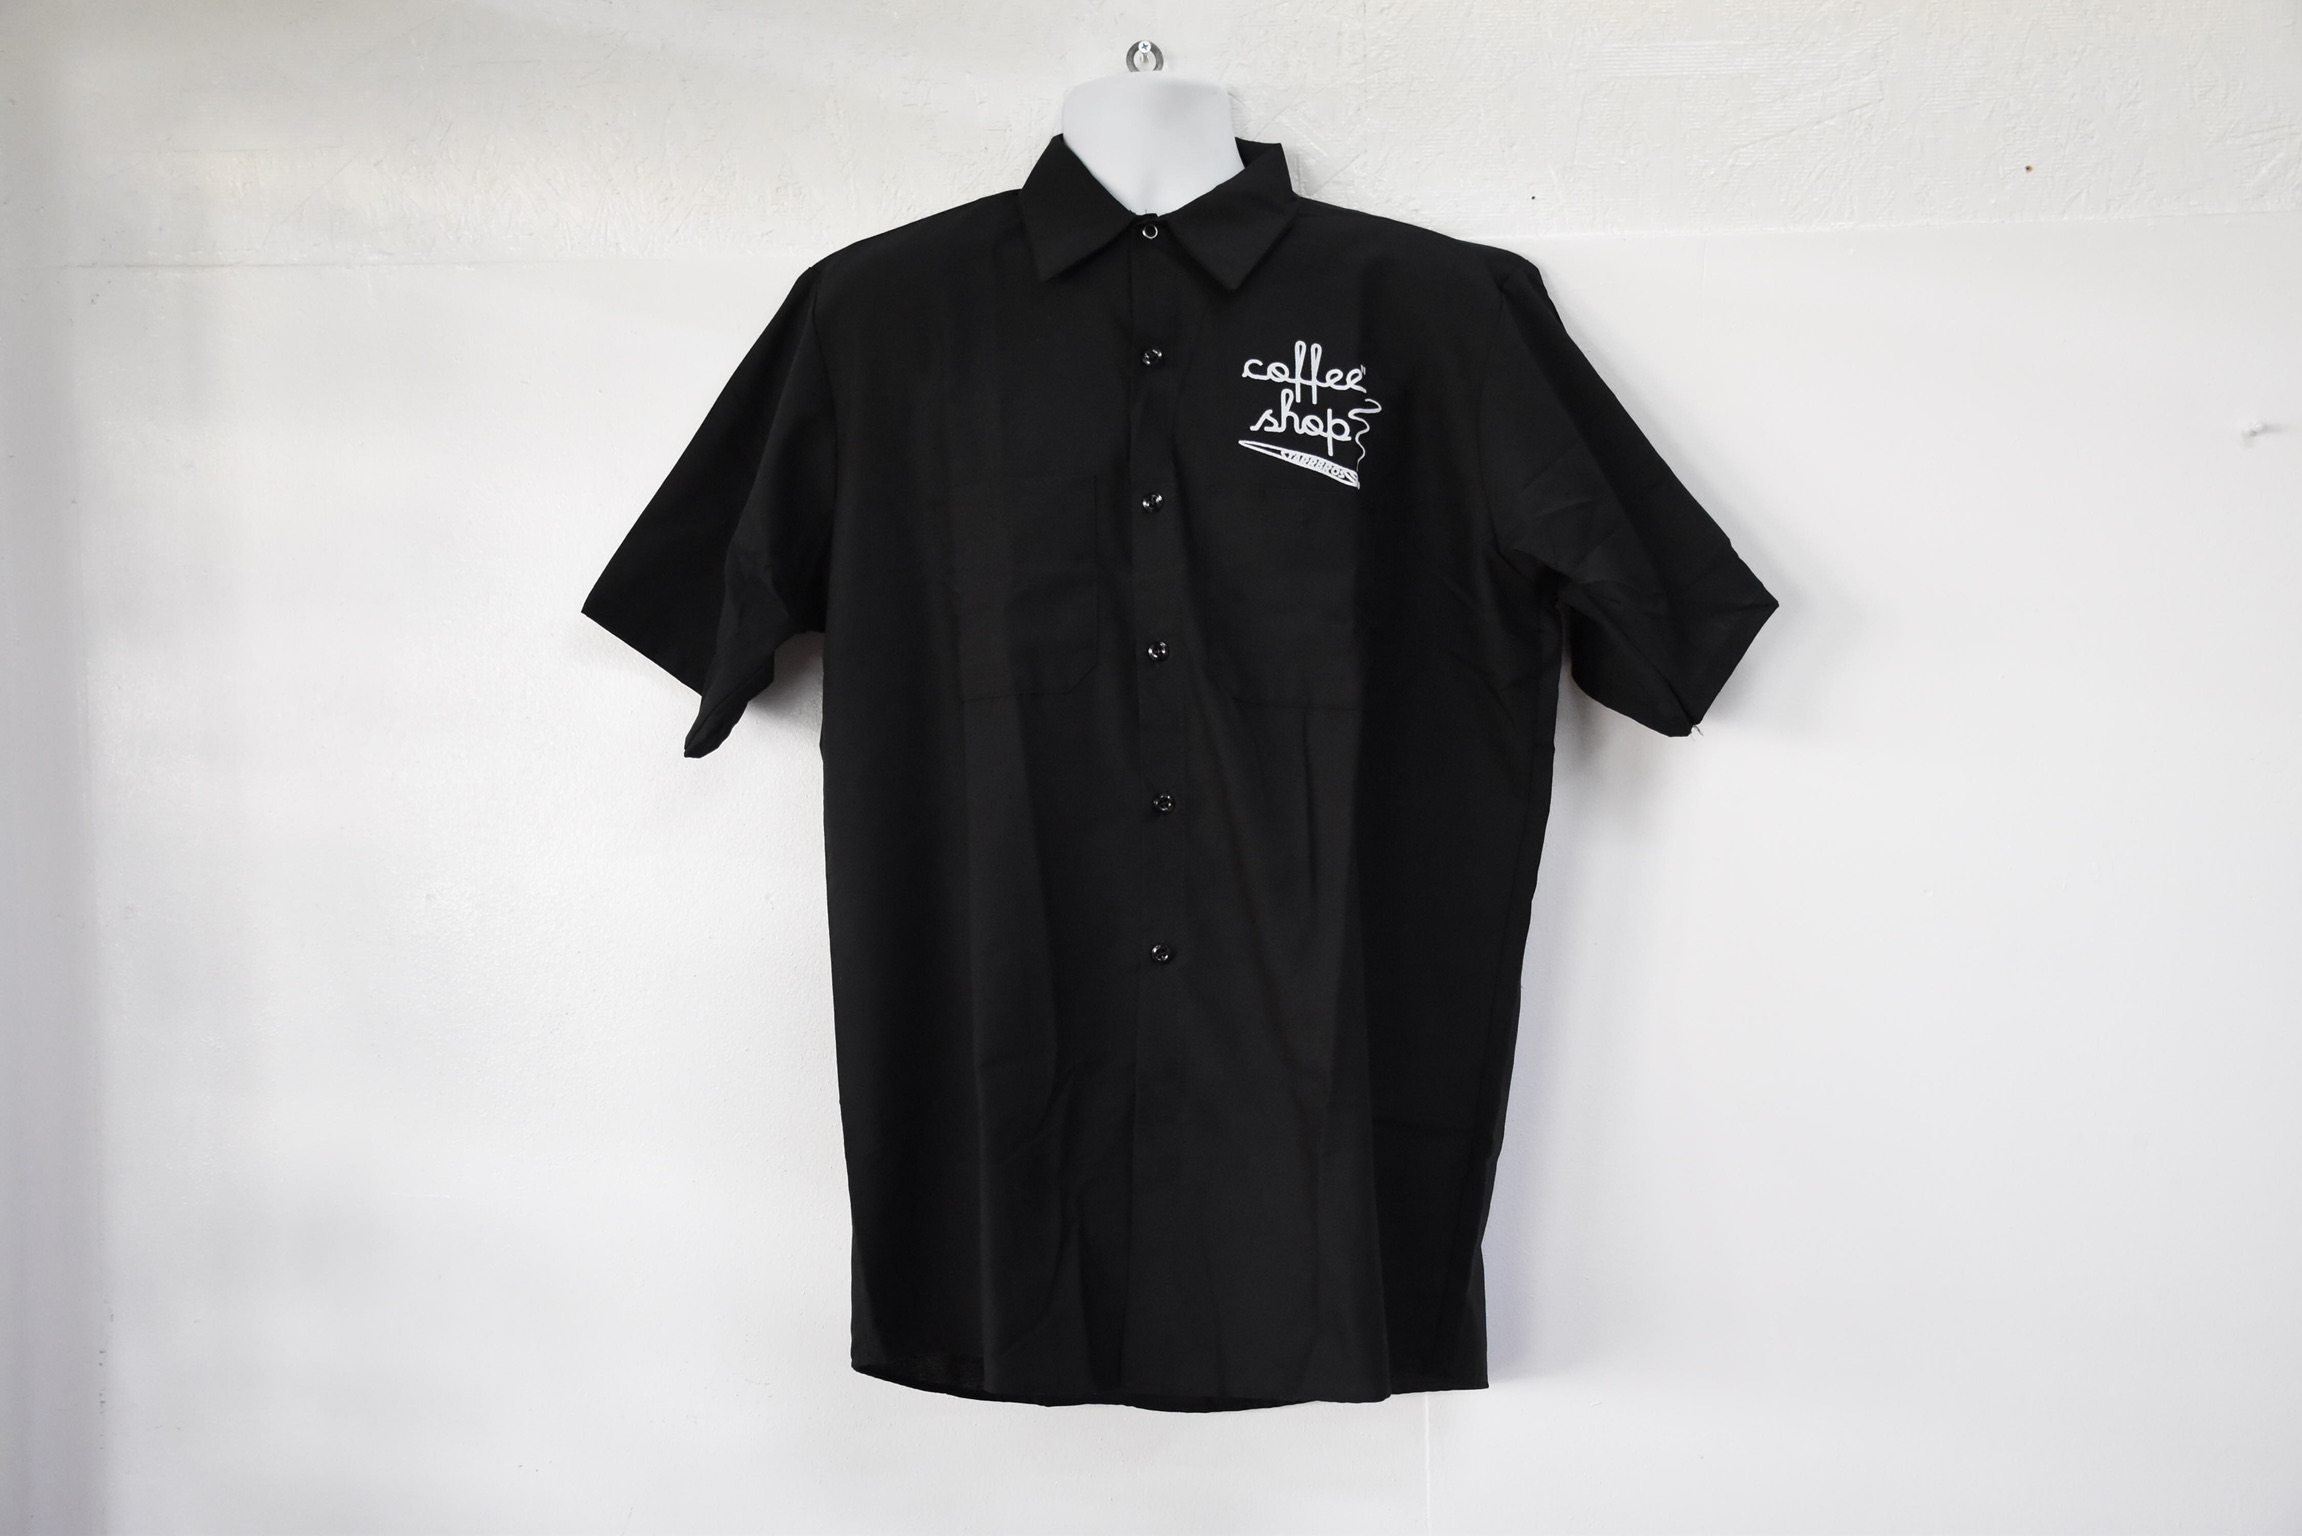 STARRBROS_COFFEE_SHOPSHIRT_BLACK